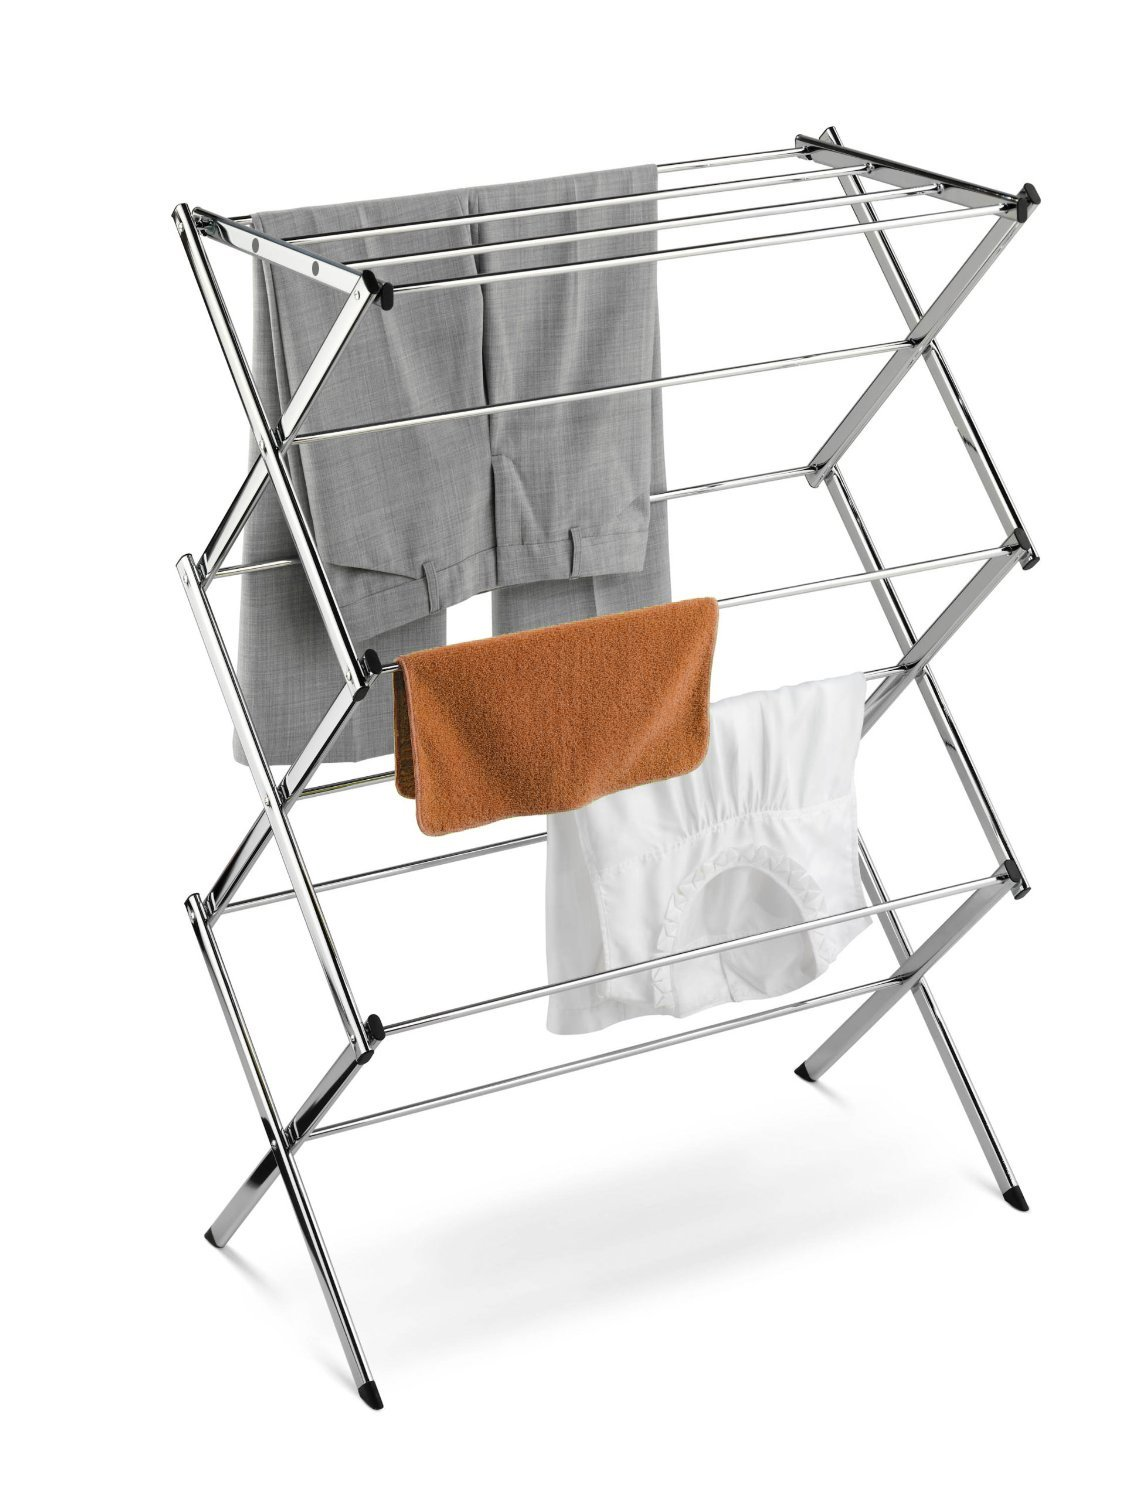 Folding Clothes Drying Rack Laundry Drying Garment